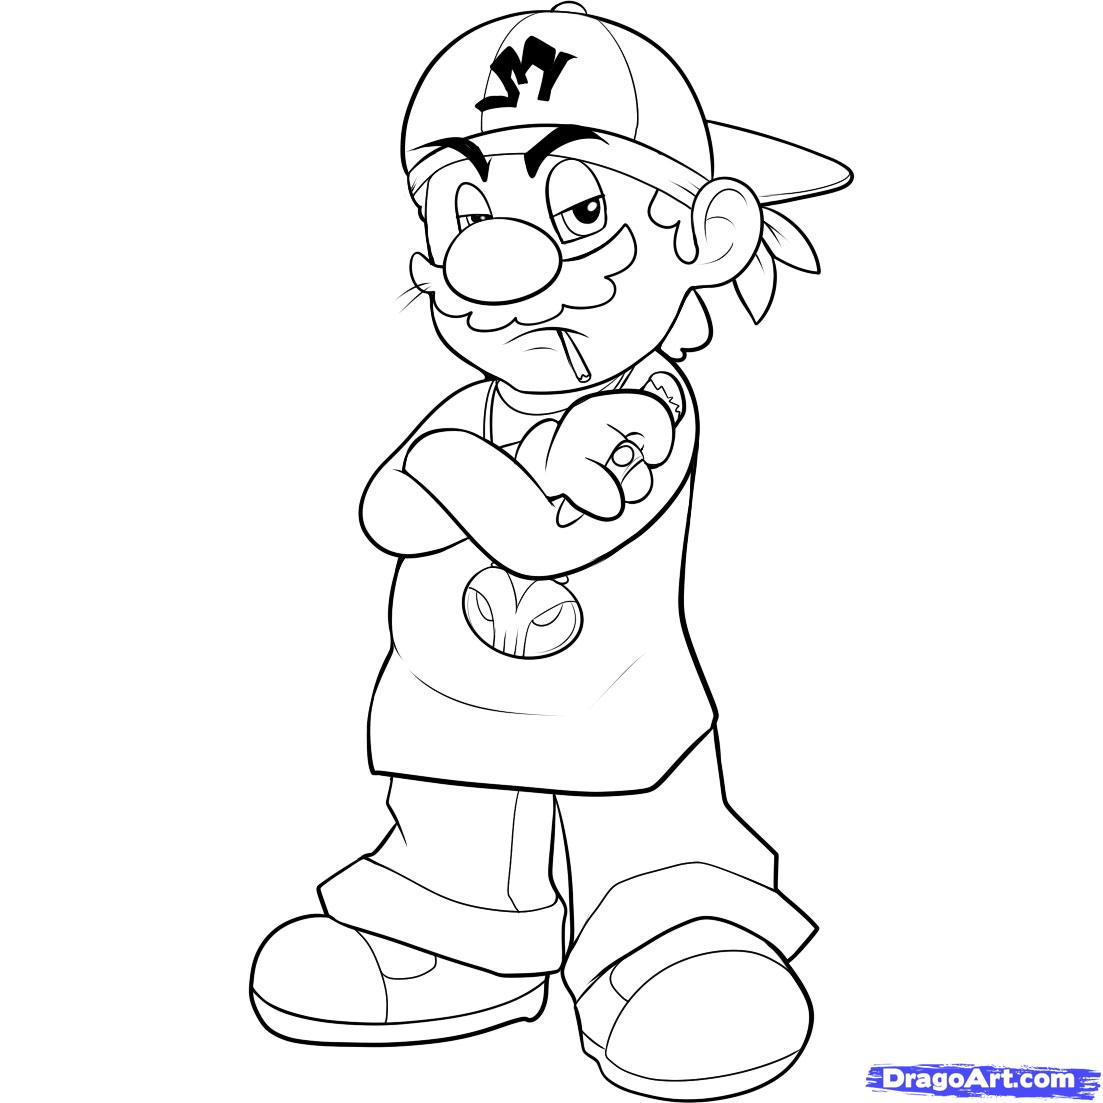 1103x1103 Graffiti Thug Character Drawing How To Draw Gangster Mario, Step